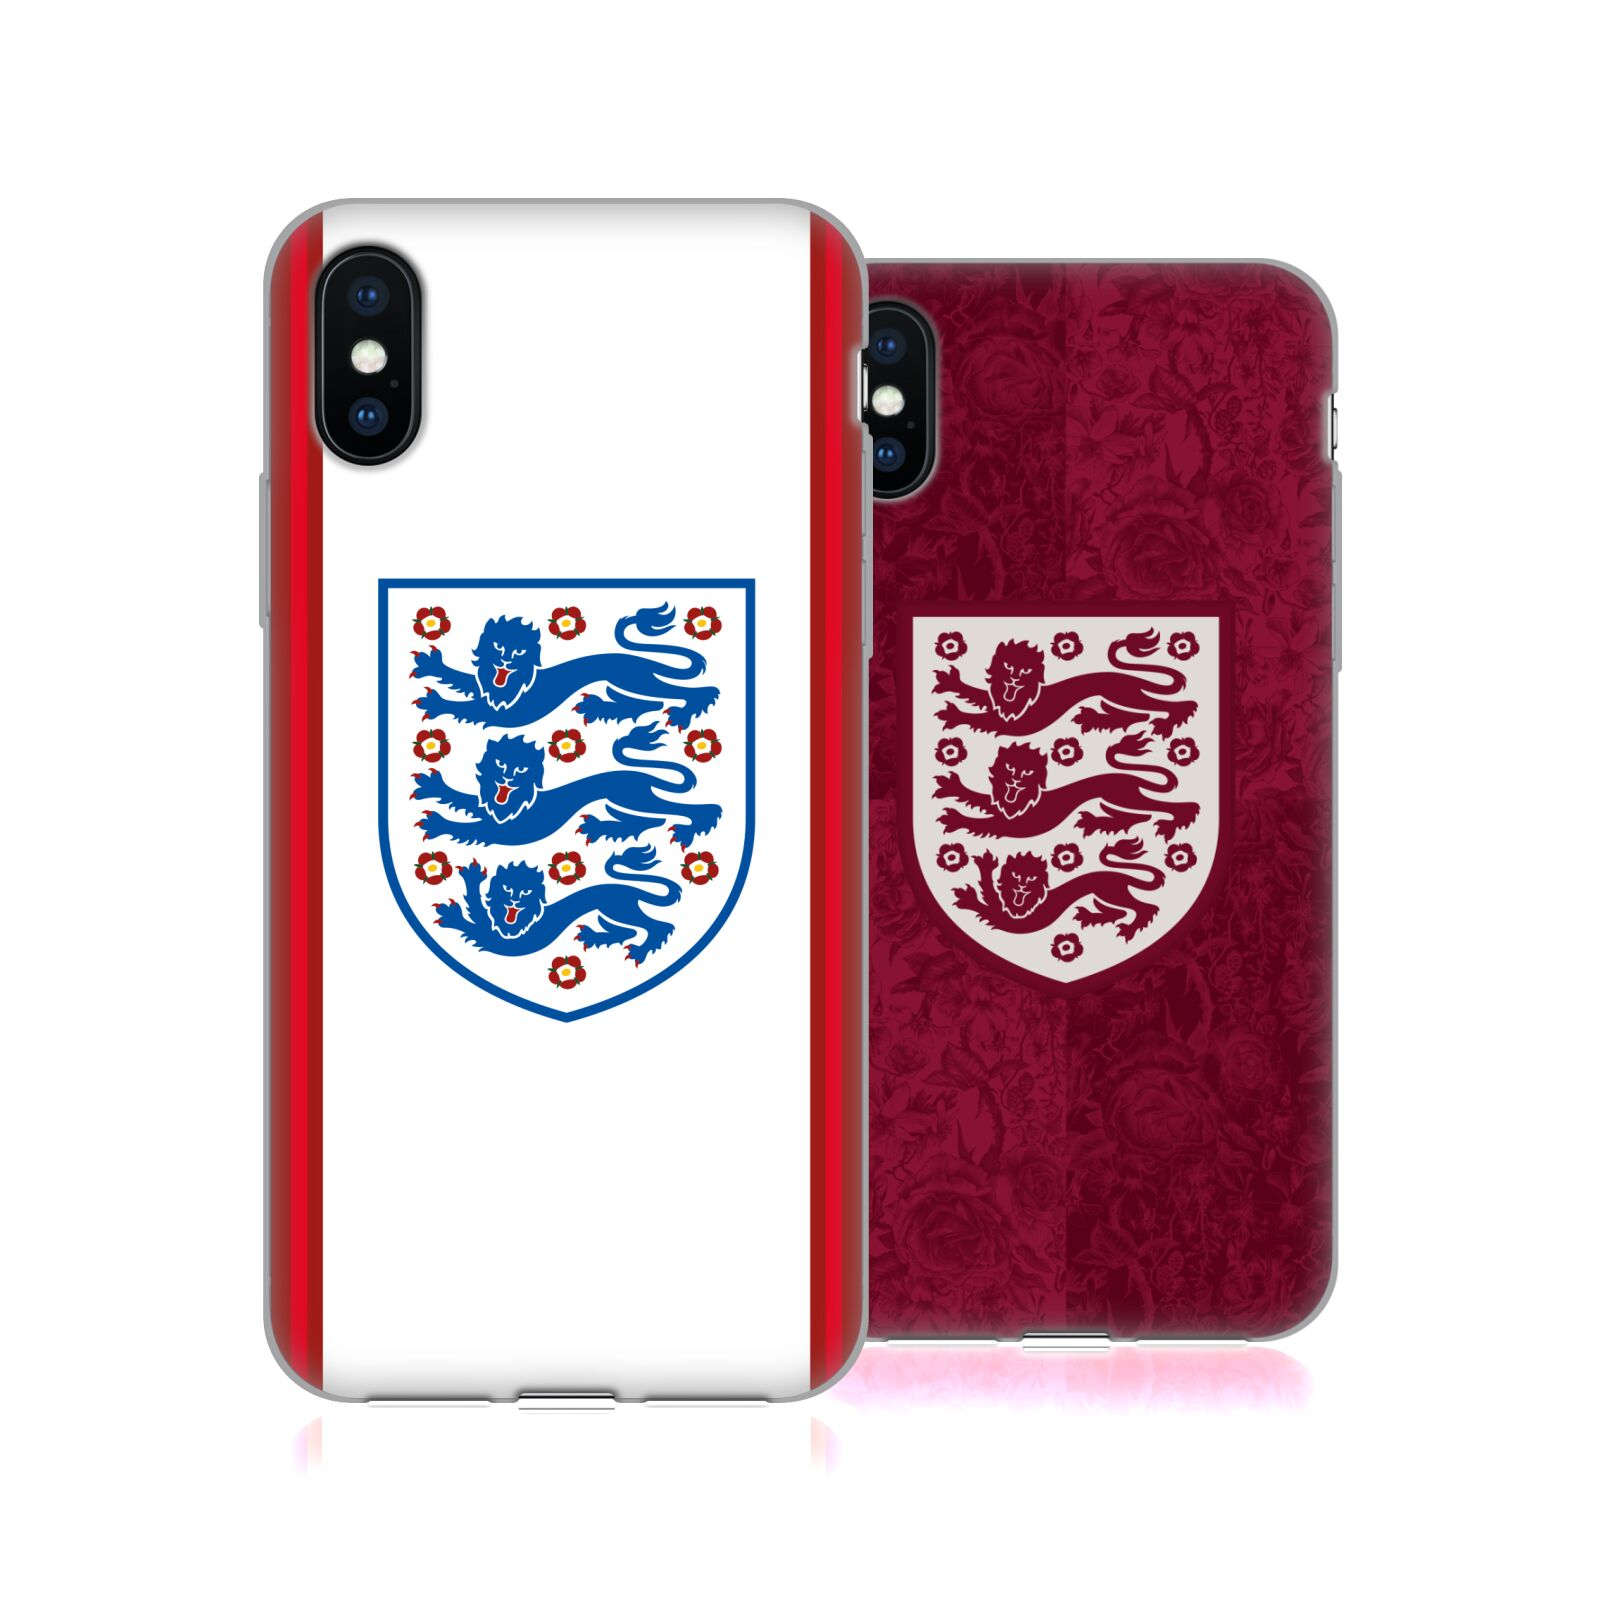 England National Football Team <!--translate-lineup-->2019/20 Women's World Cup<!--translate-lineup-->